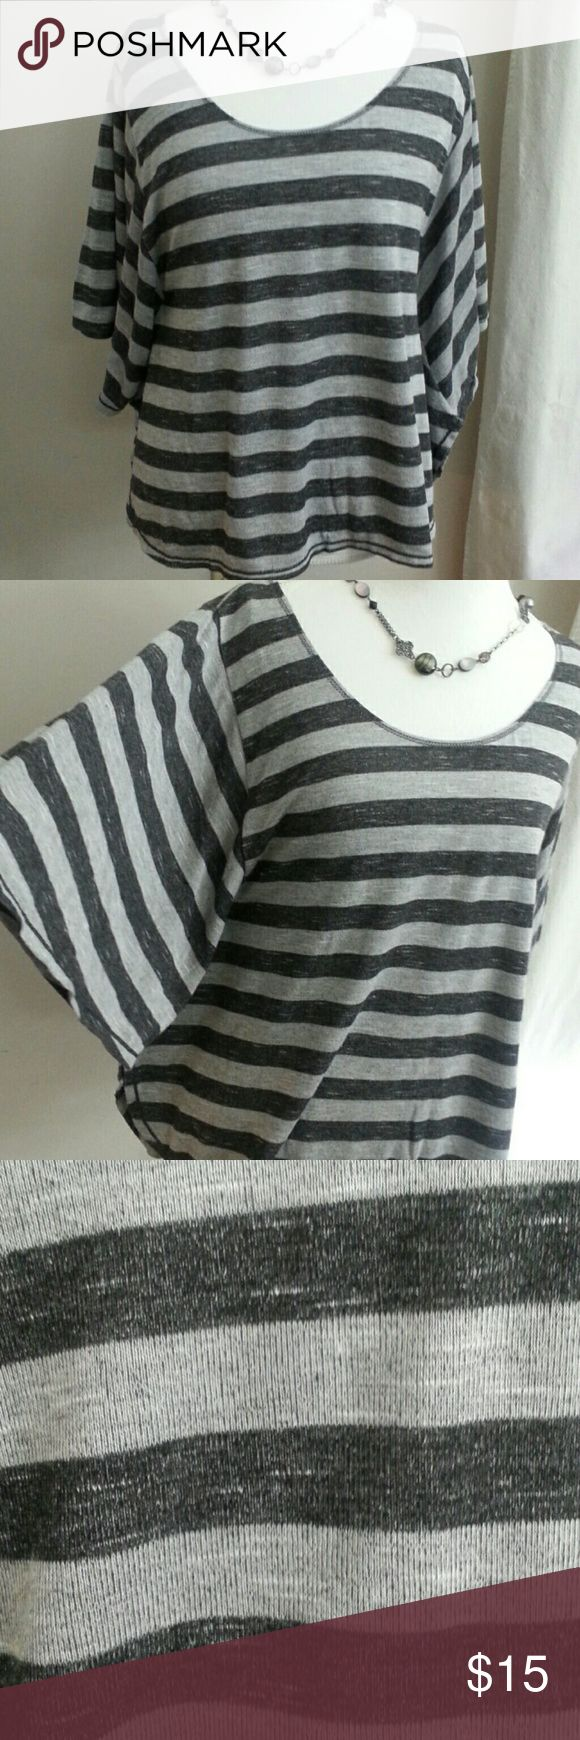 Max Studio slouchy batwing top Black and grey heathered stripes and wide batwing sleeves. This top is long enough to work Max Studio Tops Blouses